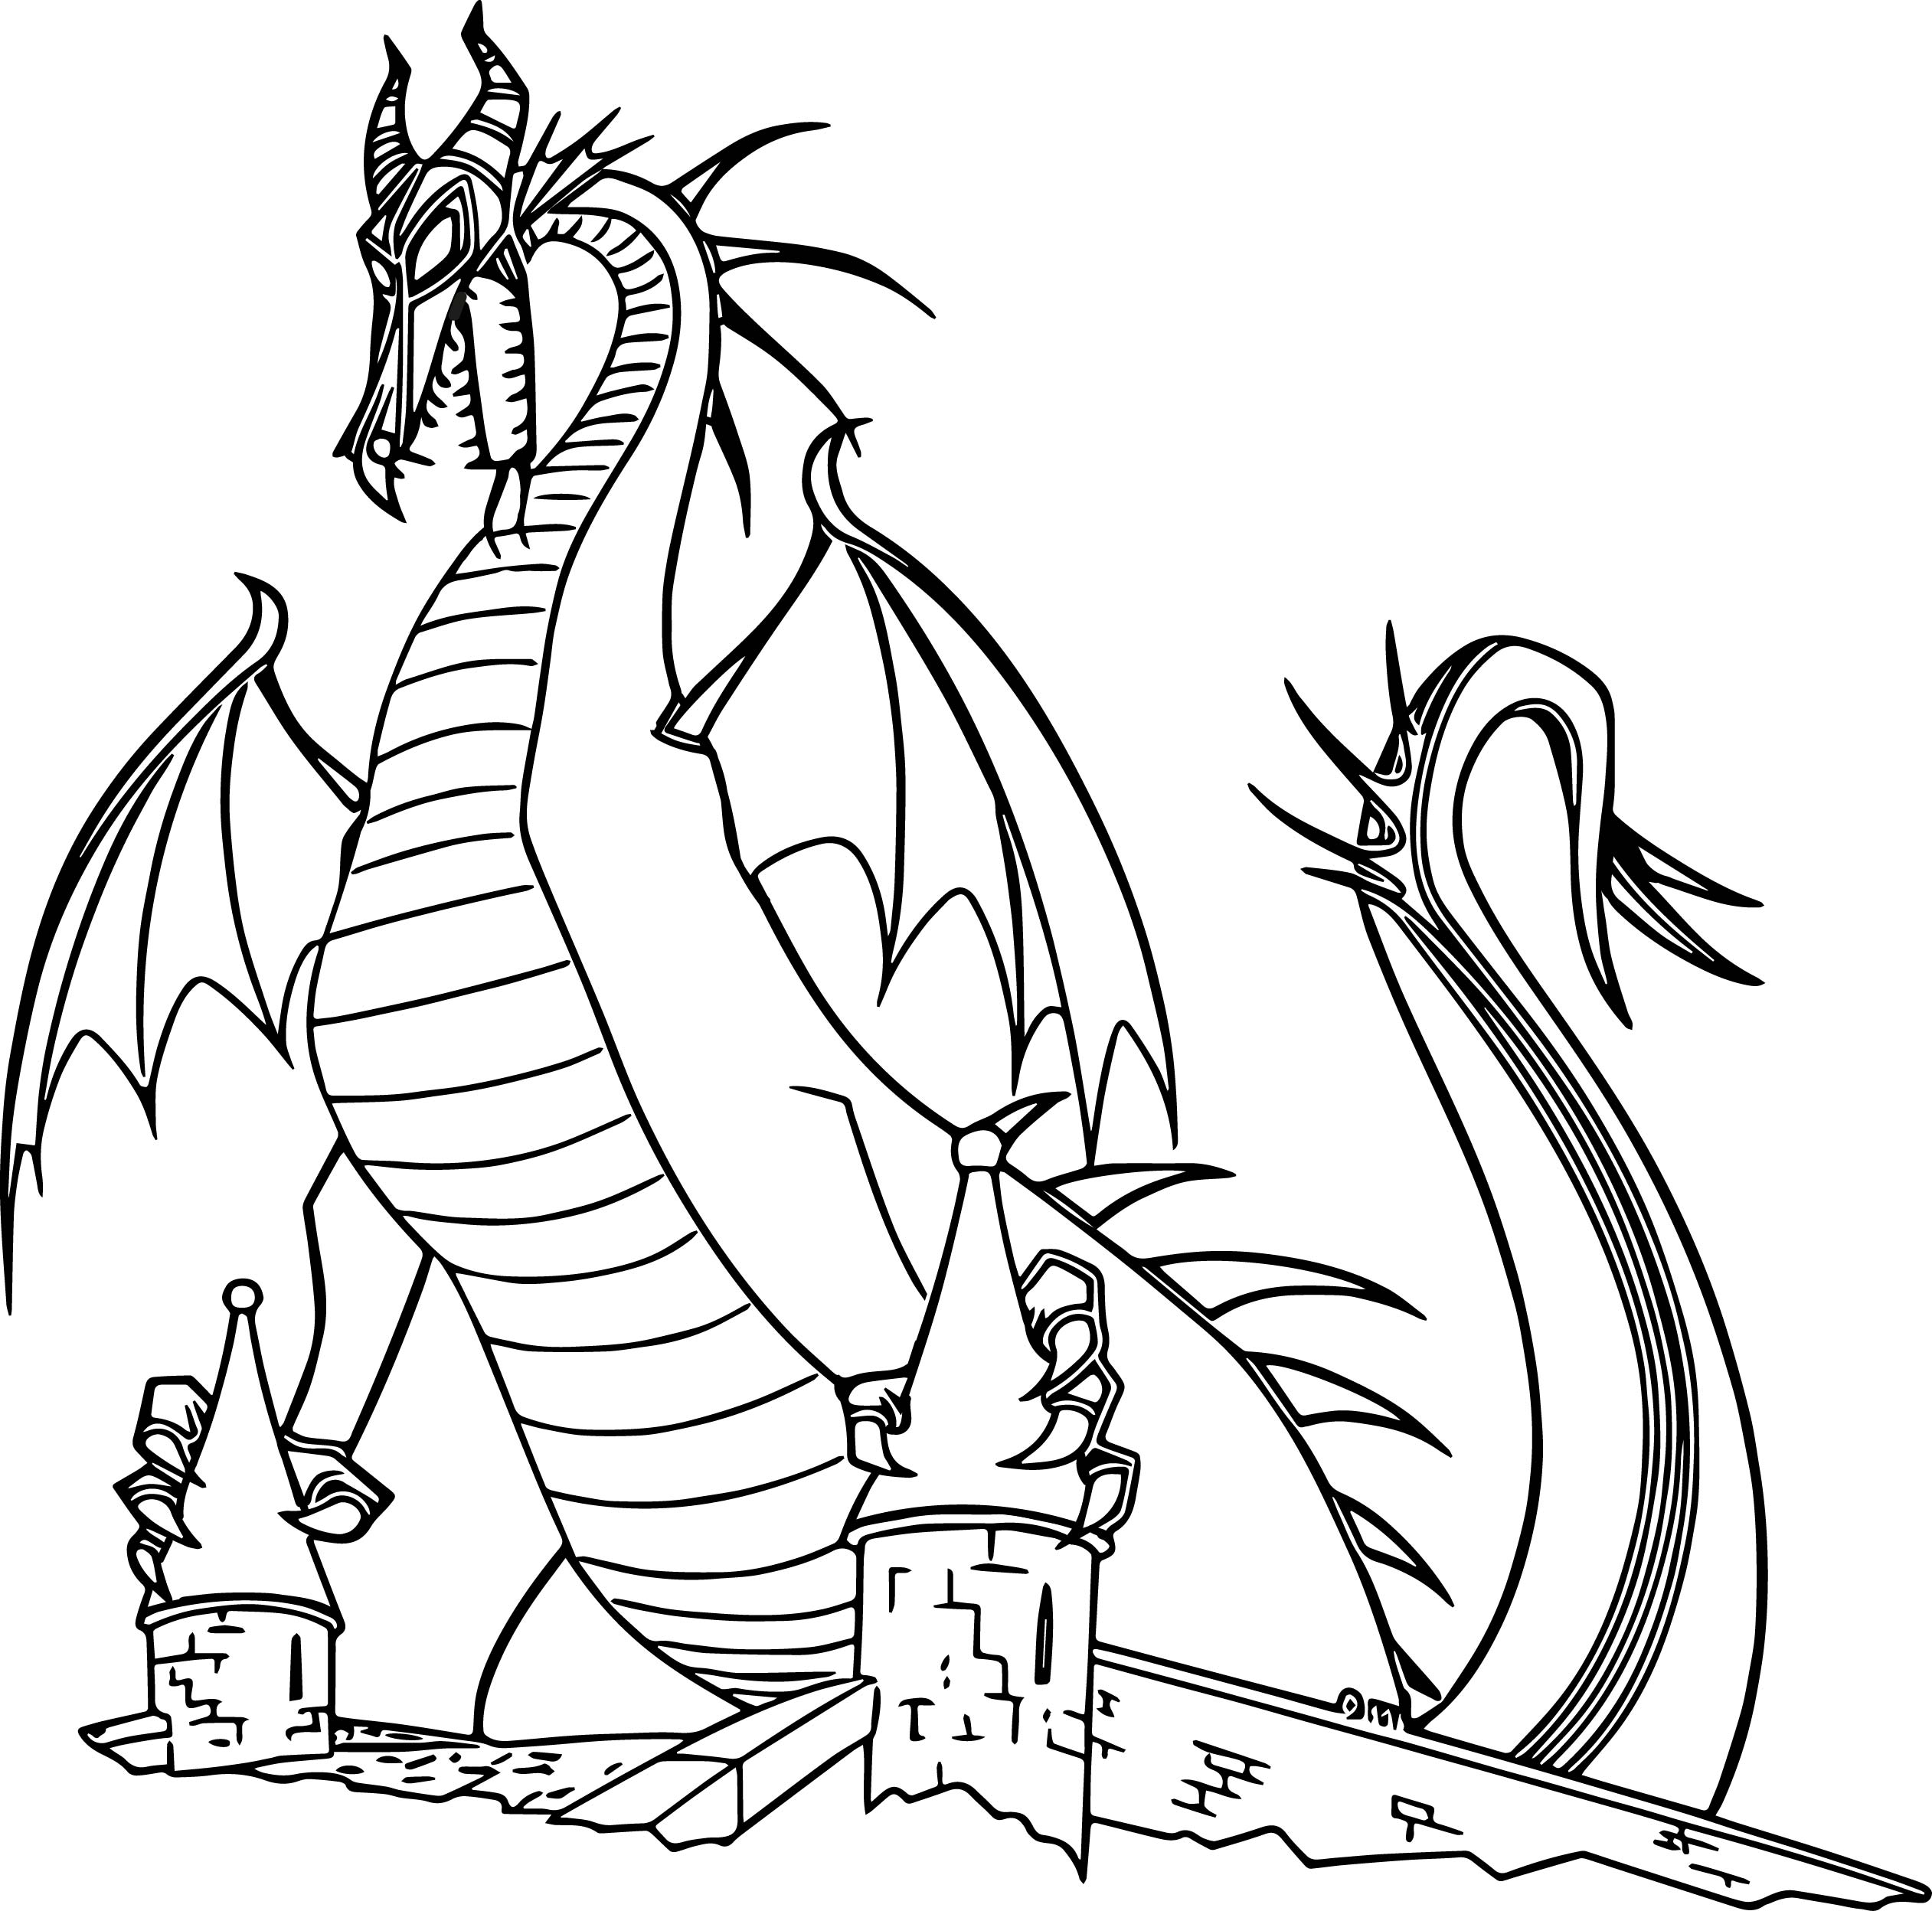 maleficent dragon castle cartoon coloring page wecoloringpage